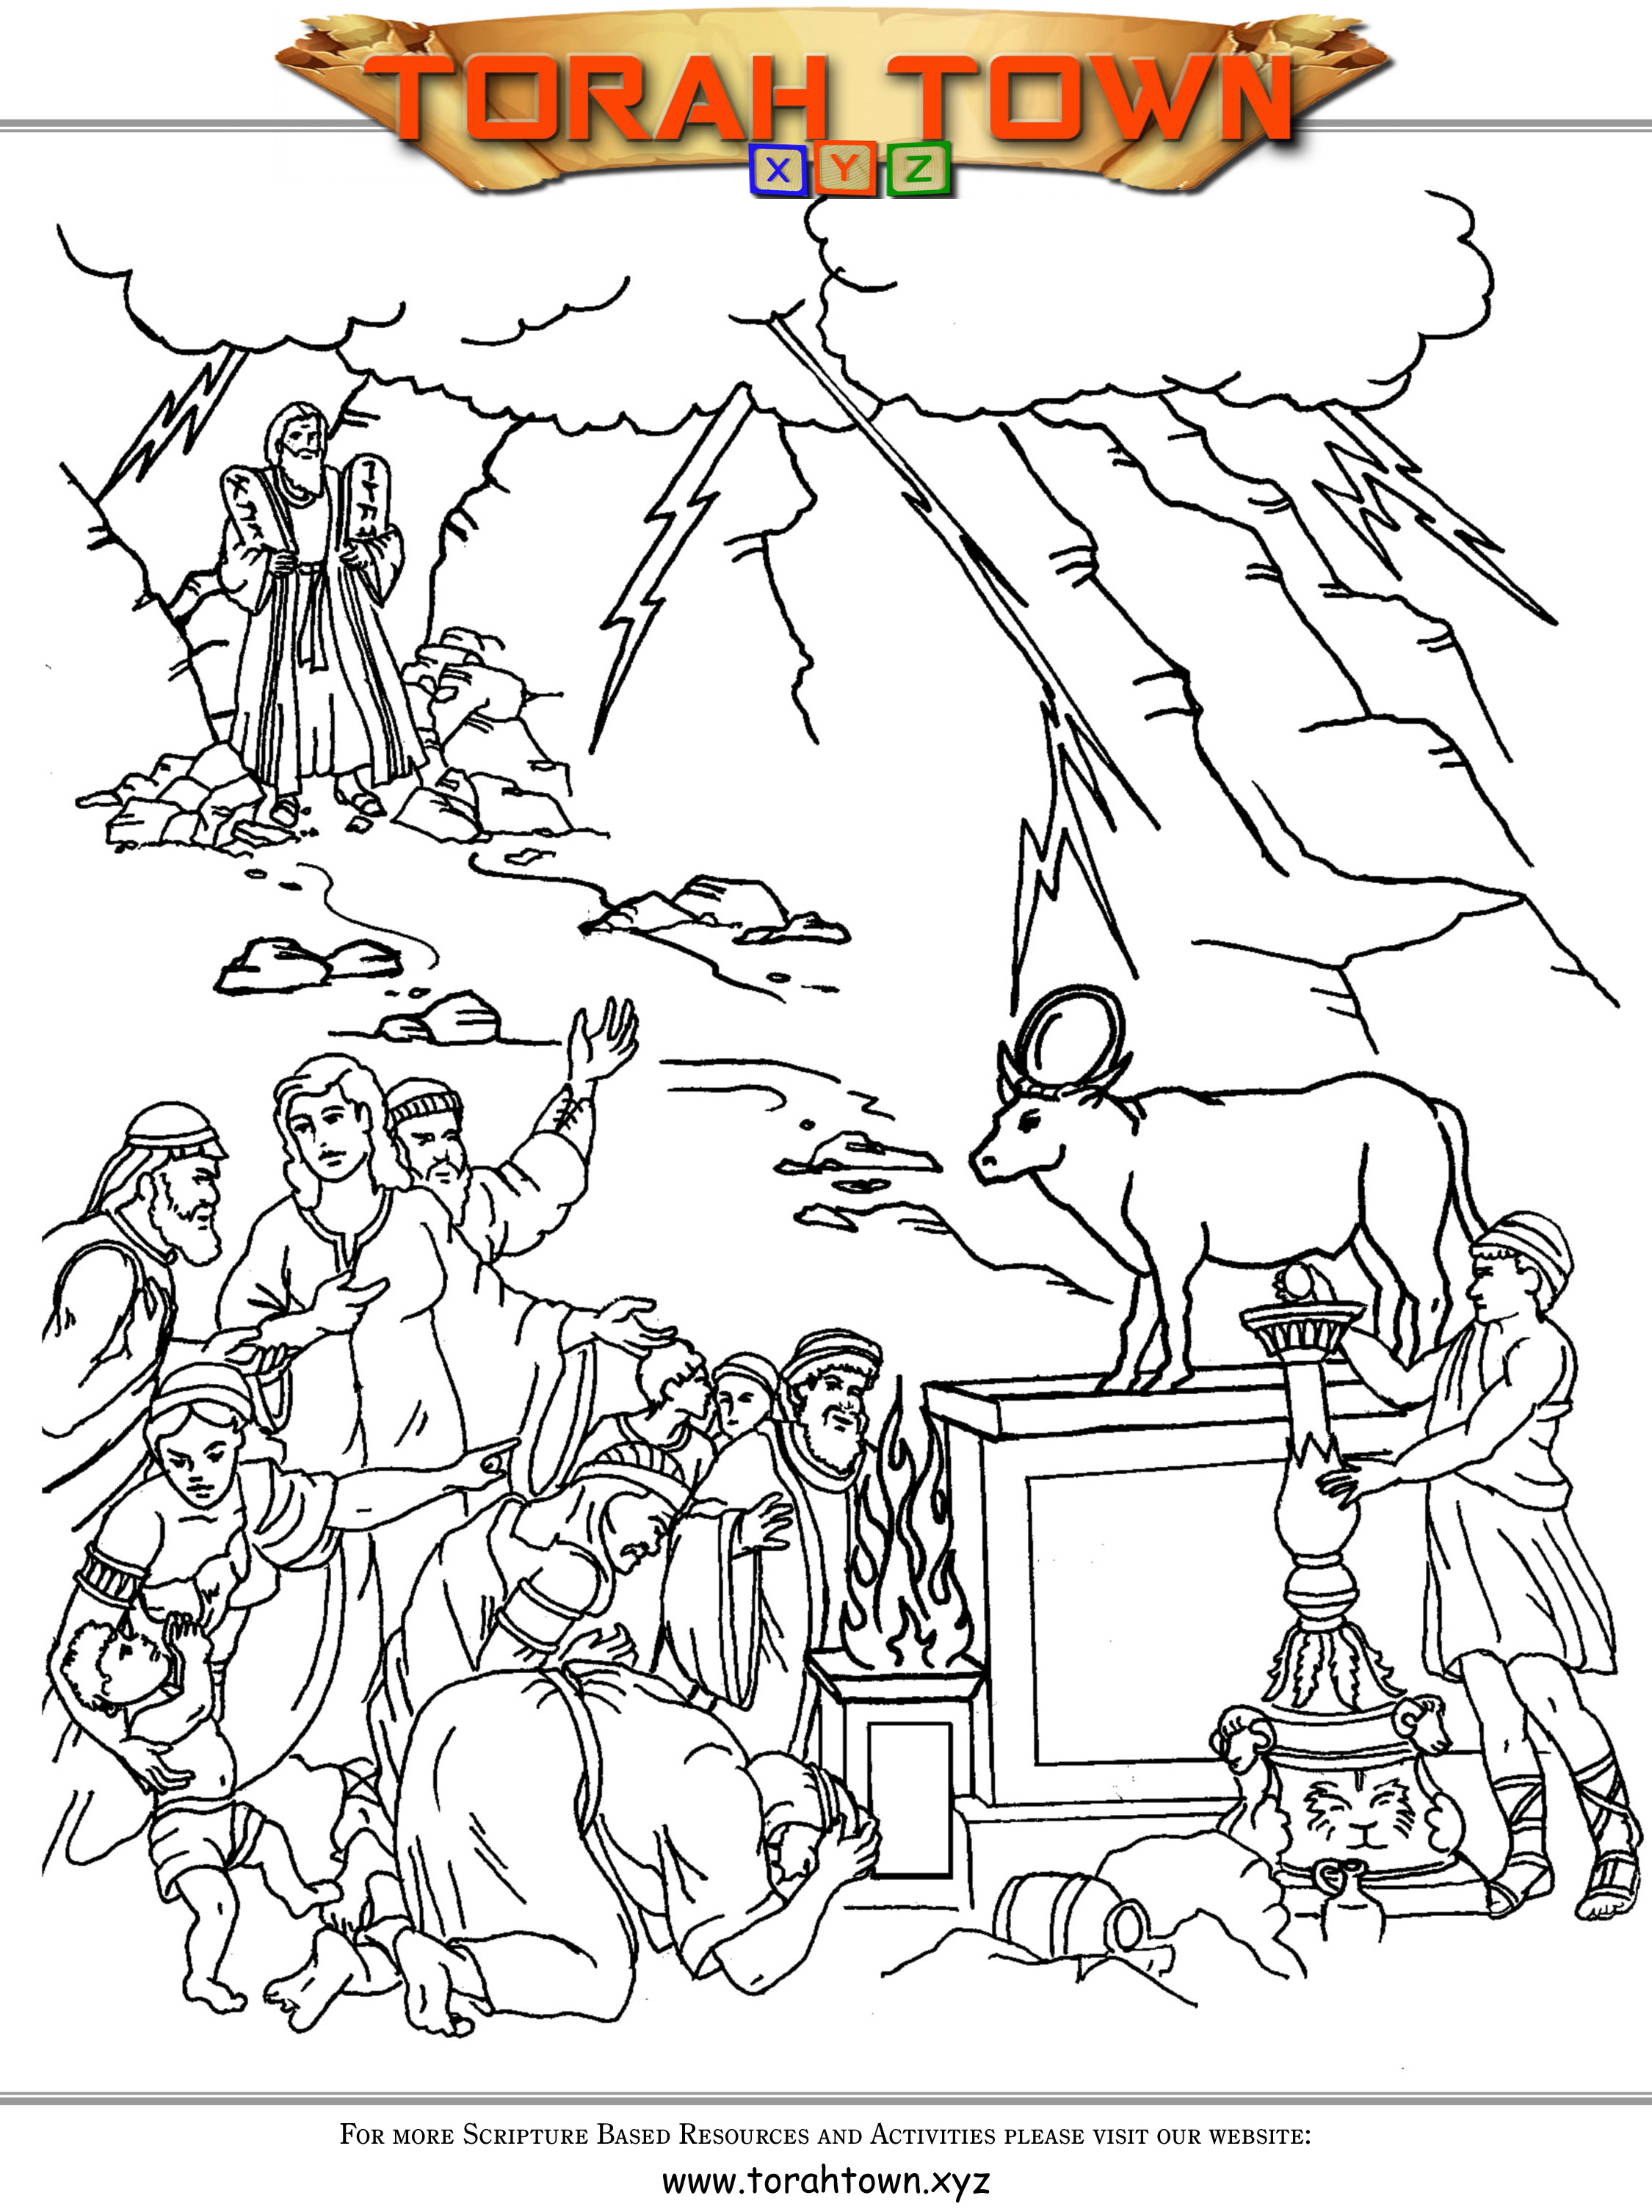 39 The Golden Calf Coloring avatar the last airbenders coloring pages